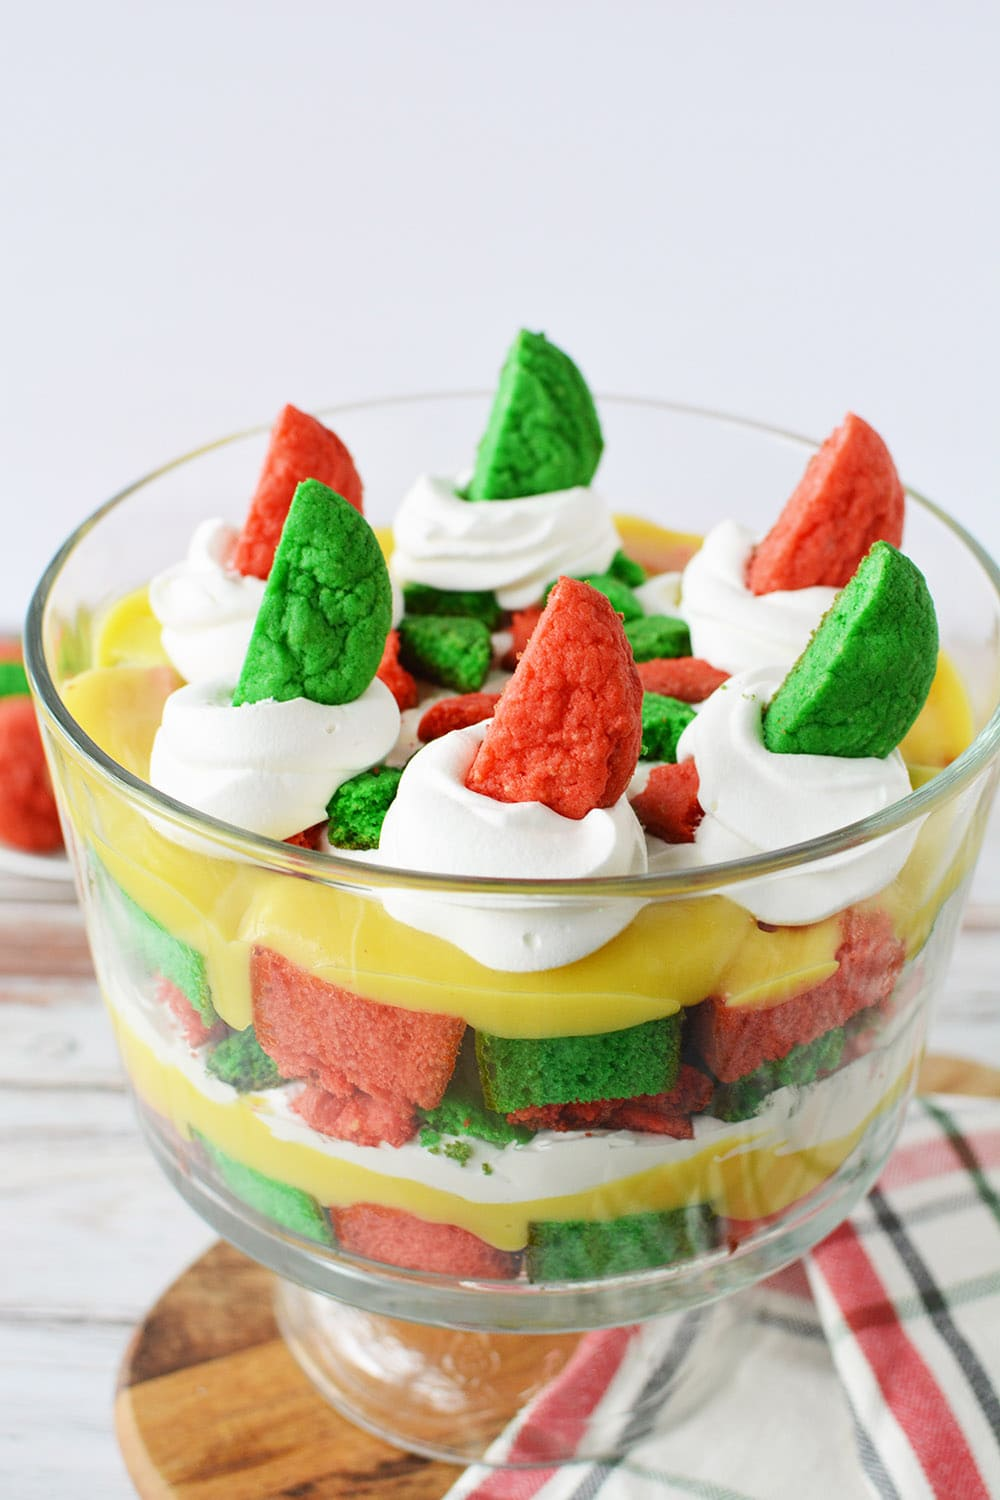 Christmas dessert trifle on a table with red and green cake and cookies.